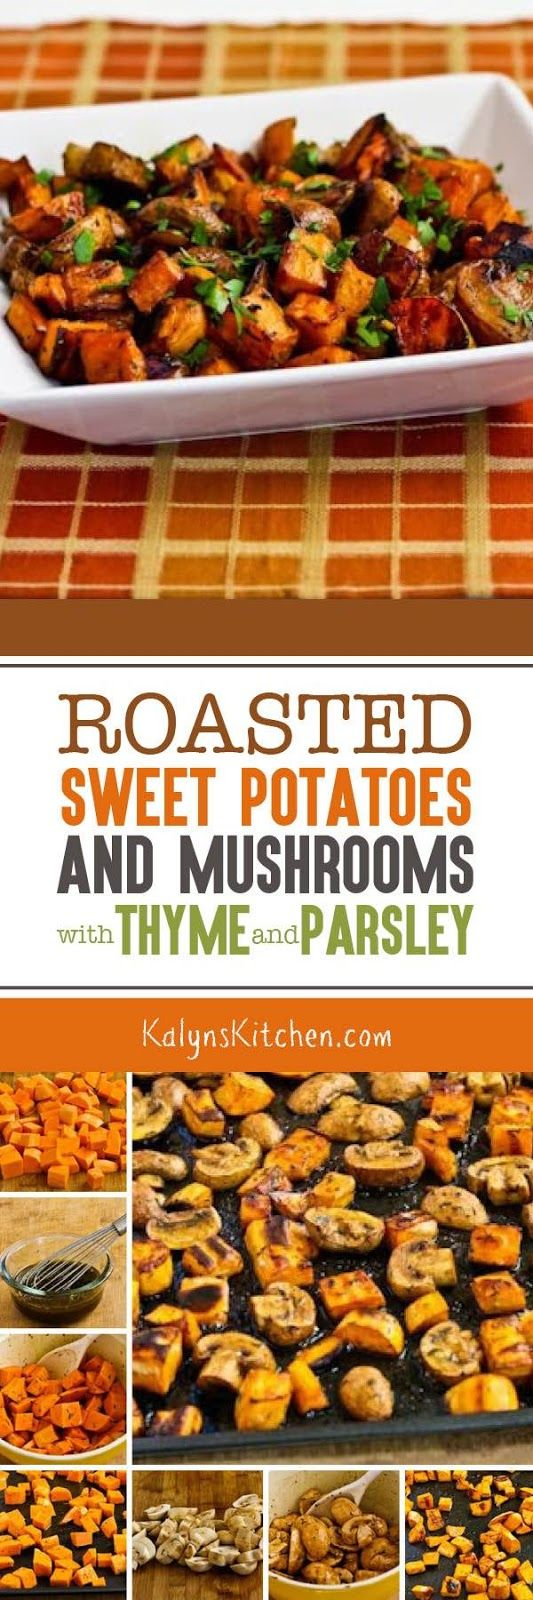 Roasted Sweet Potatoes and Mushrooms with Thyme